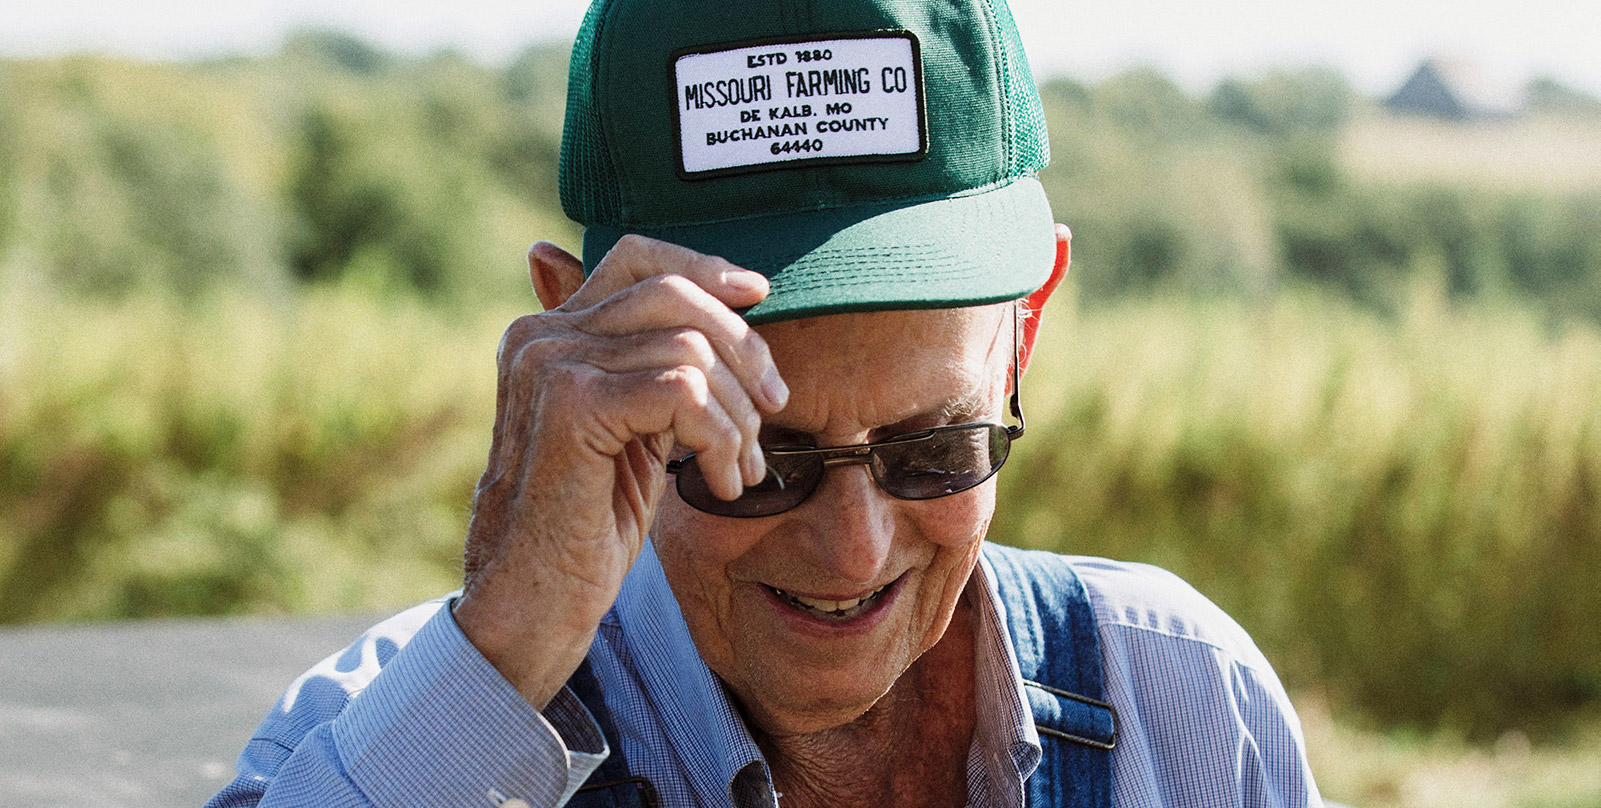 One of four generations of farmers adjusting his signature Missouri Farming Company hat.